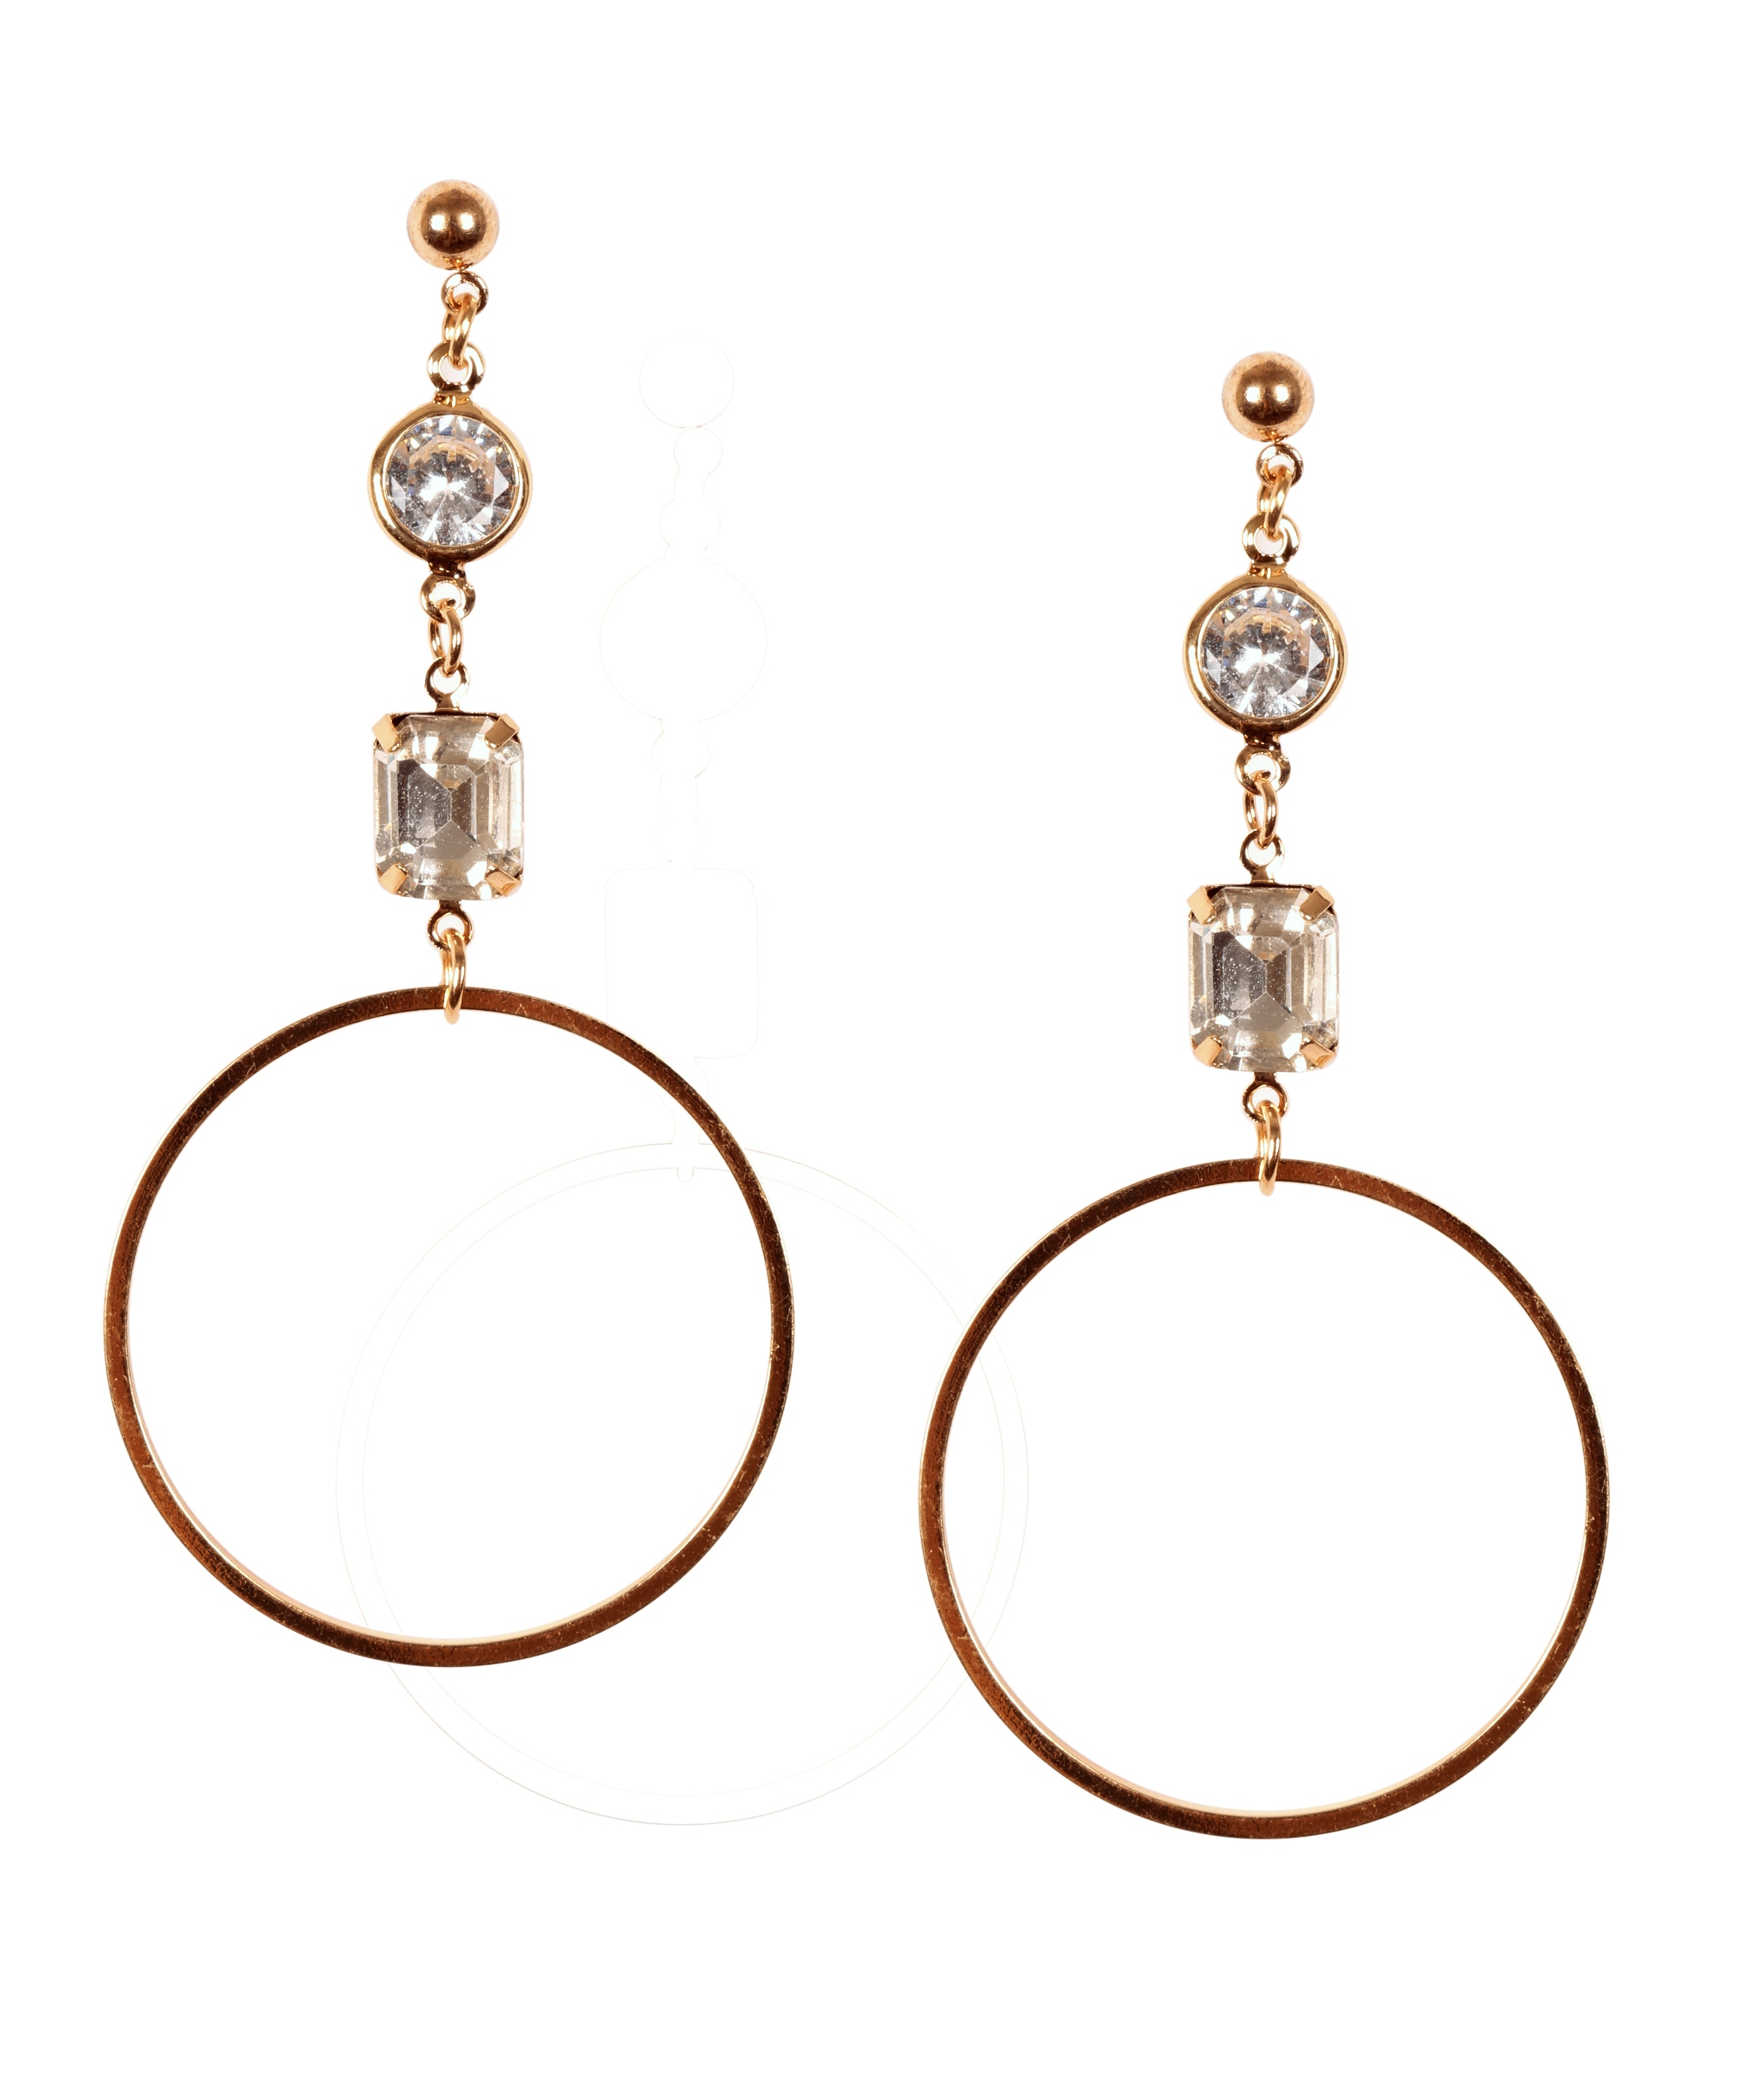 Earrings by Ayesha accessories (4)